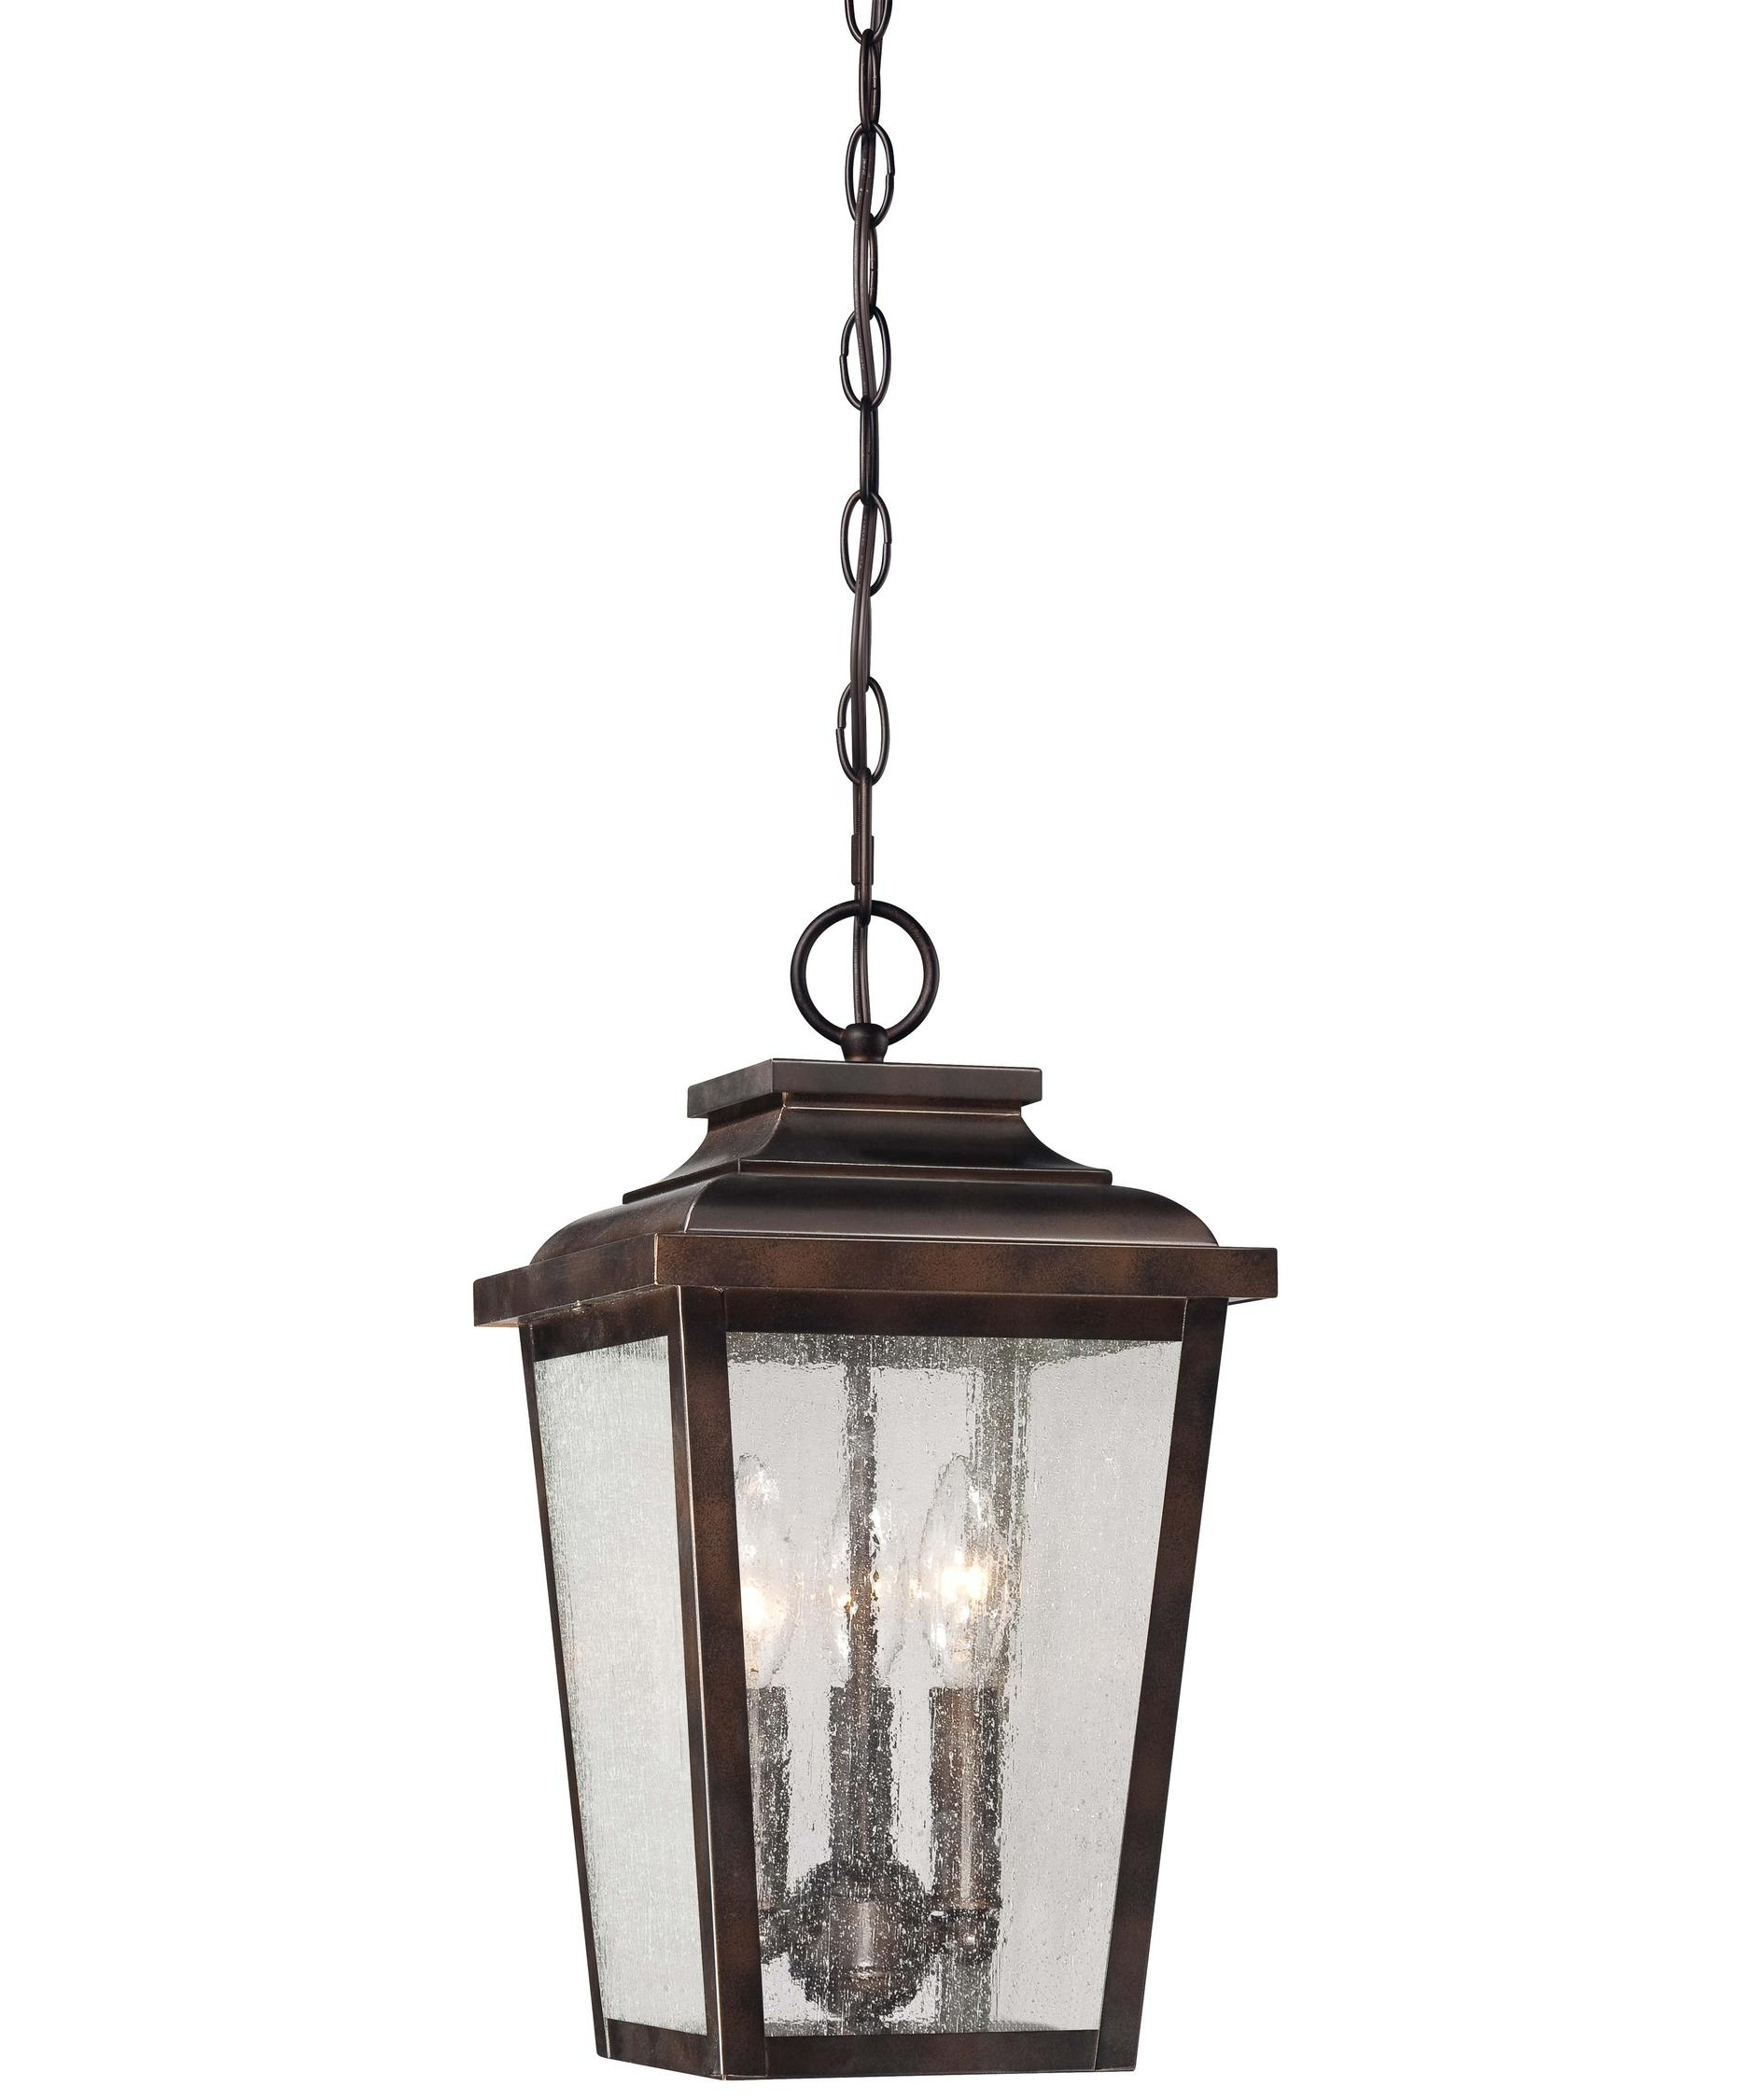 Famous Large Outdoor Hanging Pendant Lights Intended For Pendant Lighting Ideas: Top Outdoor Hanging Pendant Lights Over (View 8 of 20)